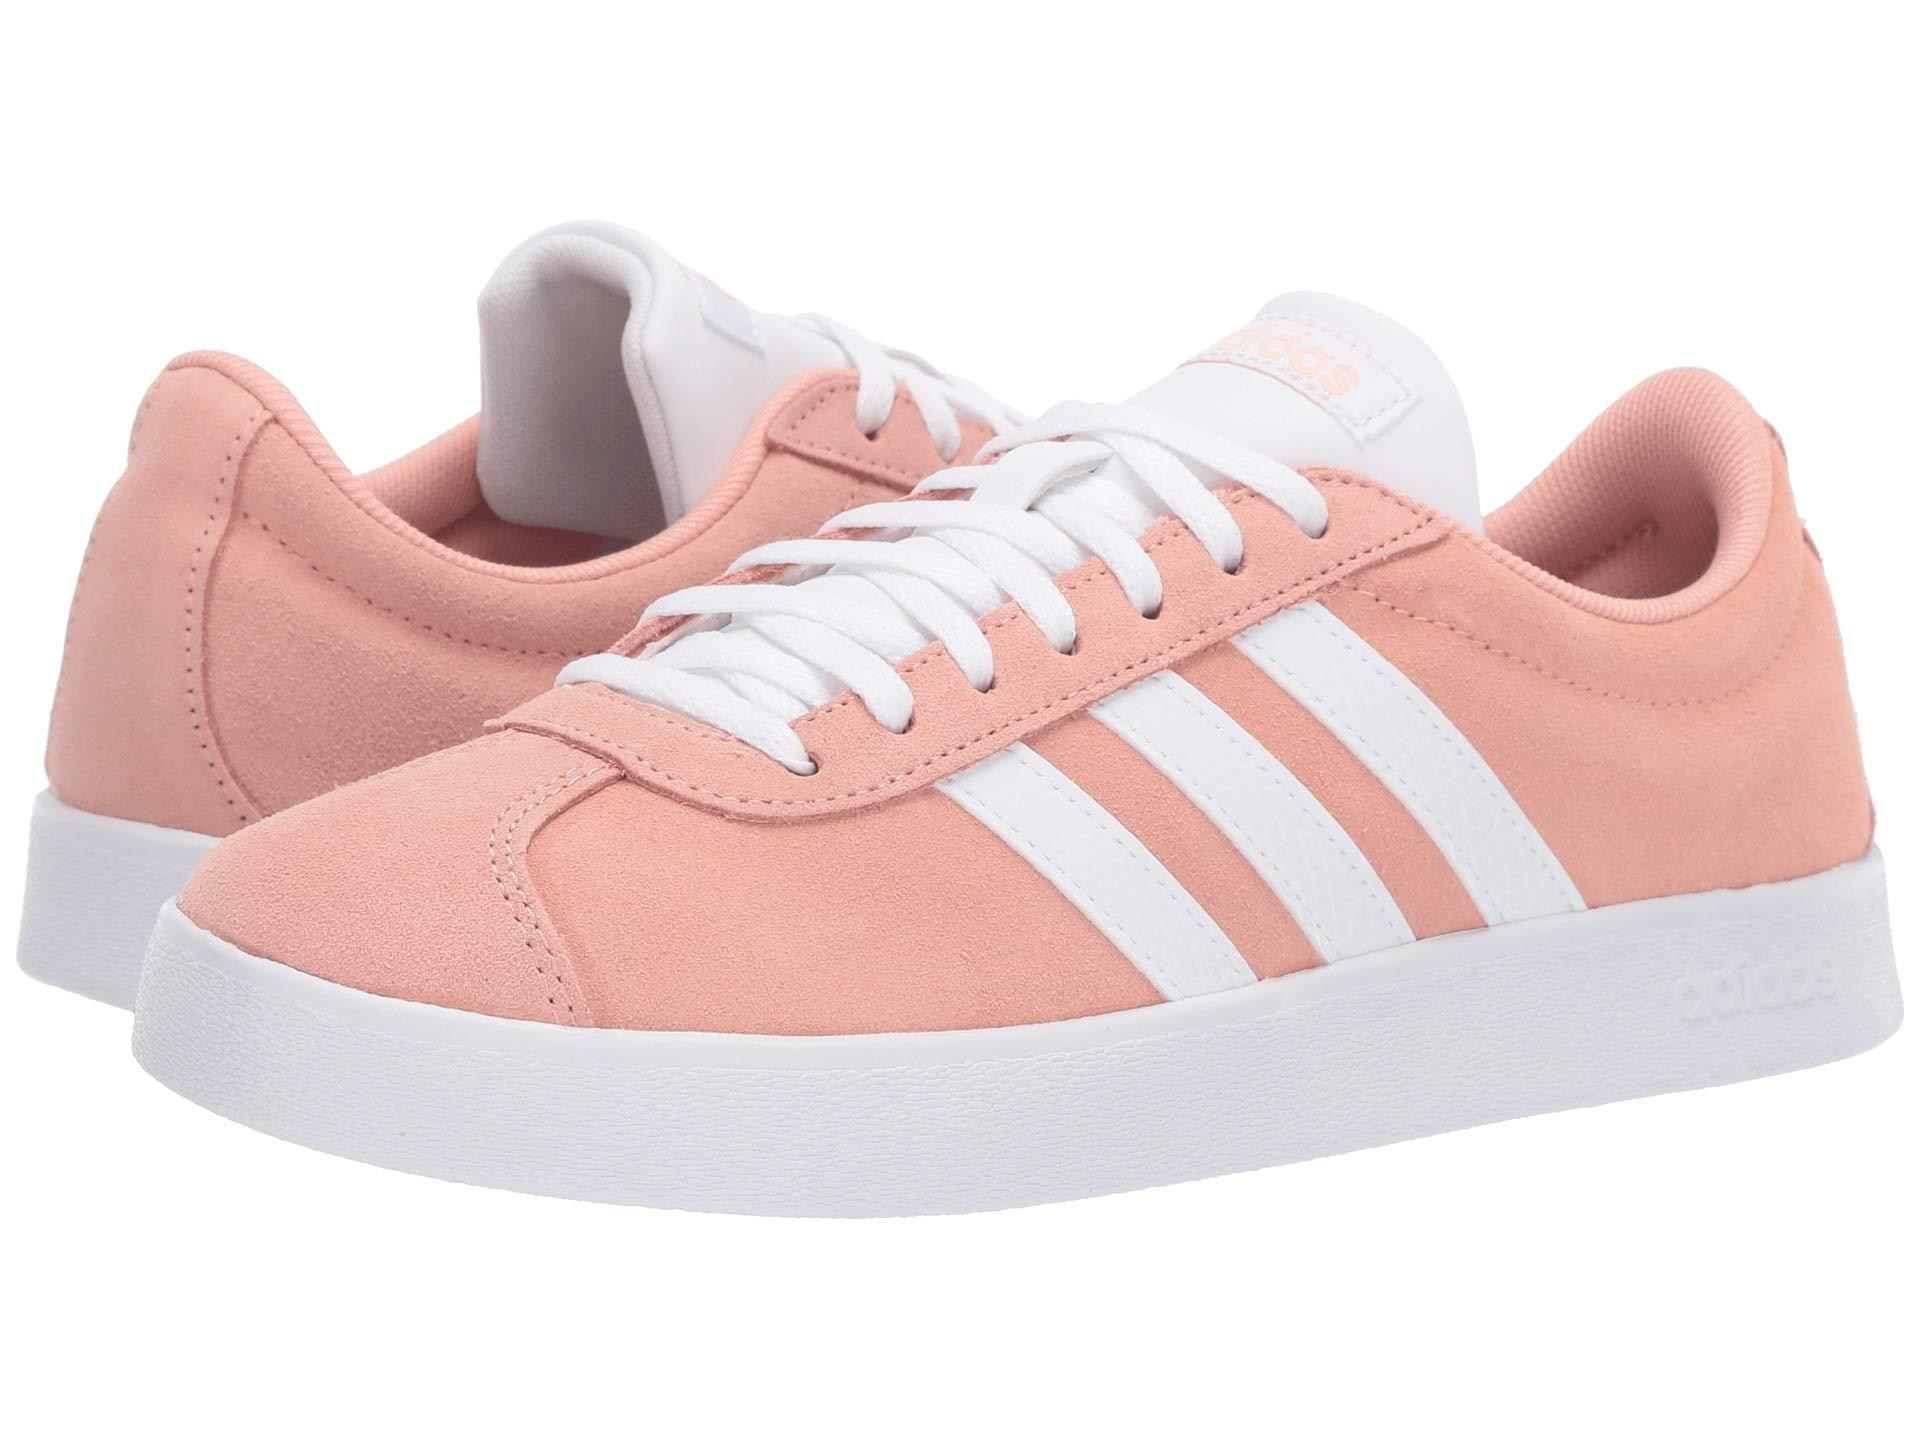 17b256e0c9db81 Lyst - adidas Vl Court Shoes in Pink